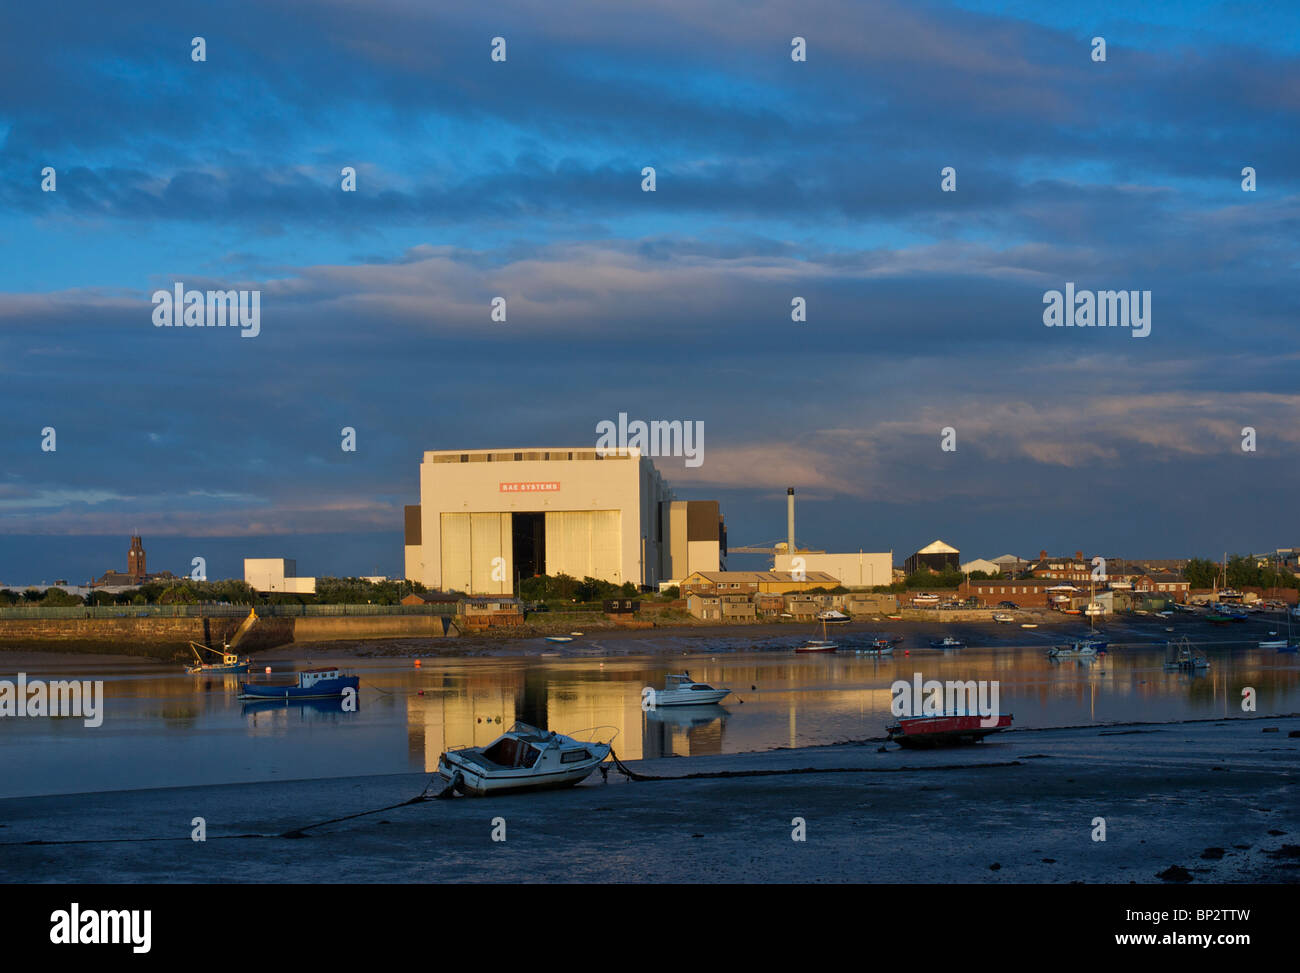 BAE systems shipyard, overlooking Walney Channel, Barrow-in-Furness, Cumbria, England UK - Stock Image